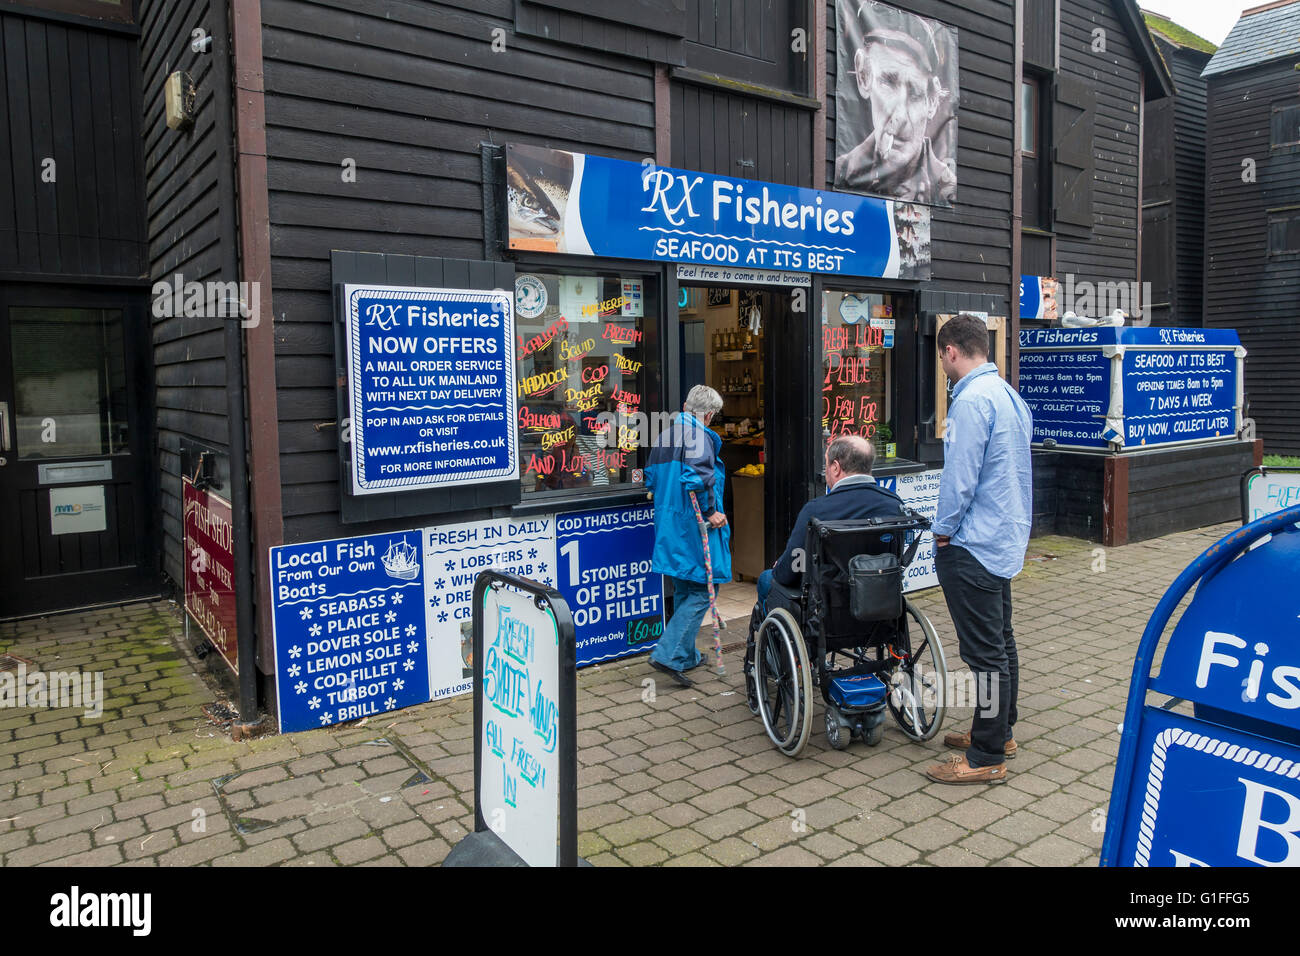 Fresh Fish Shop Hastings RX Fisheries East Sussex - Stock Image